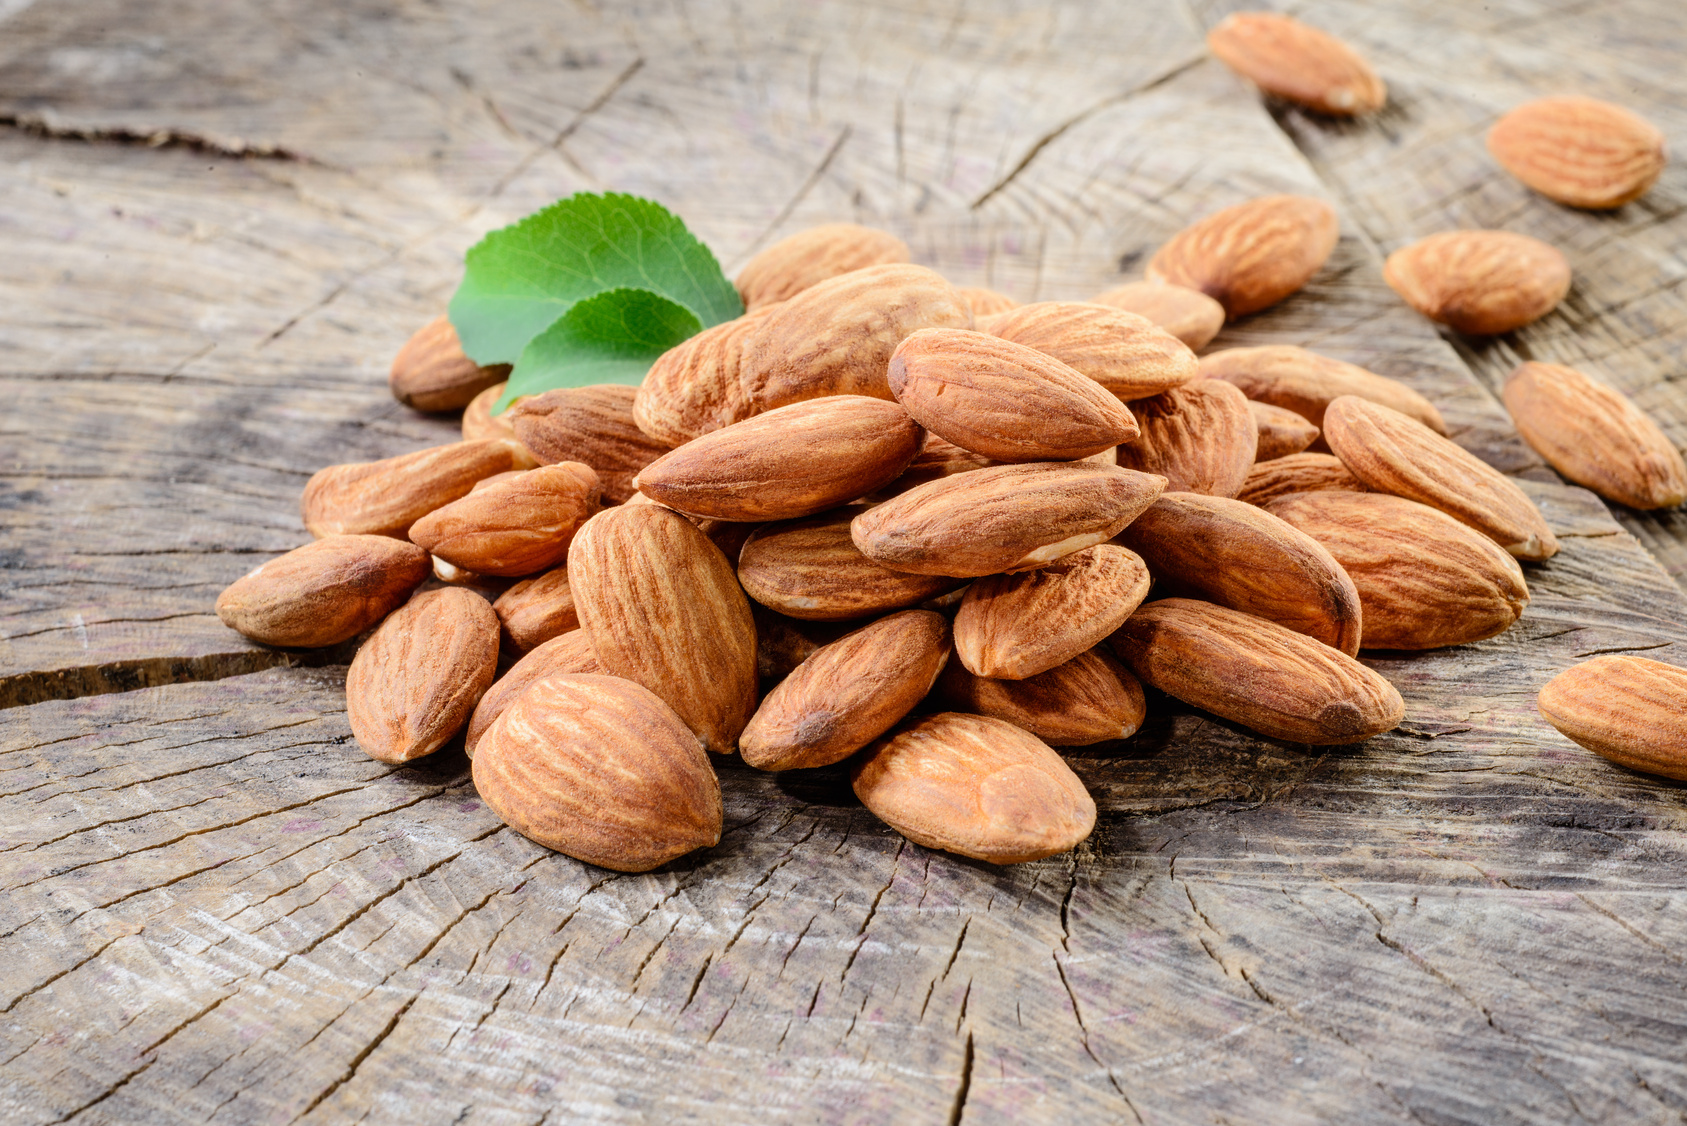 WHICH NUTS ARE BEST FOR YOUR HEALTH?